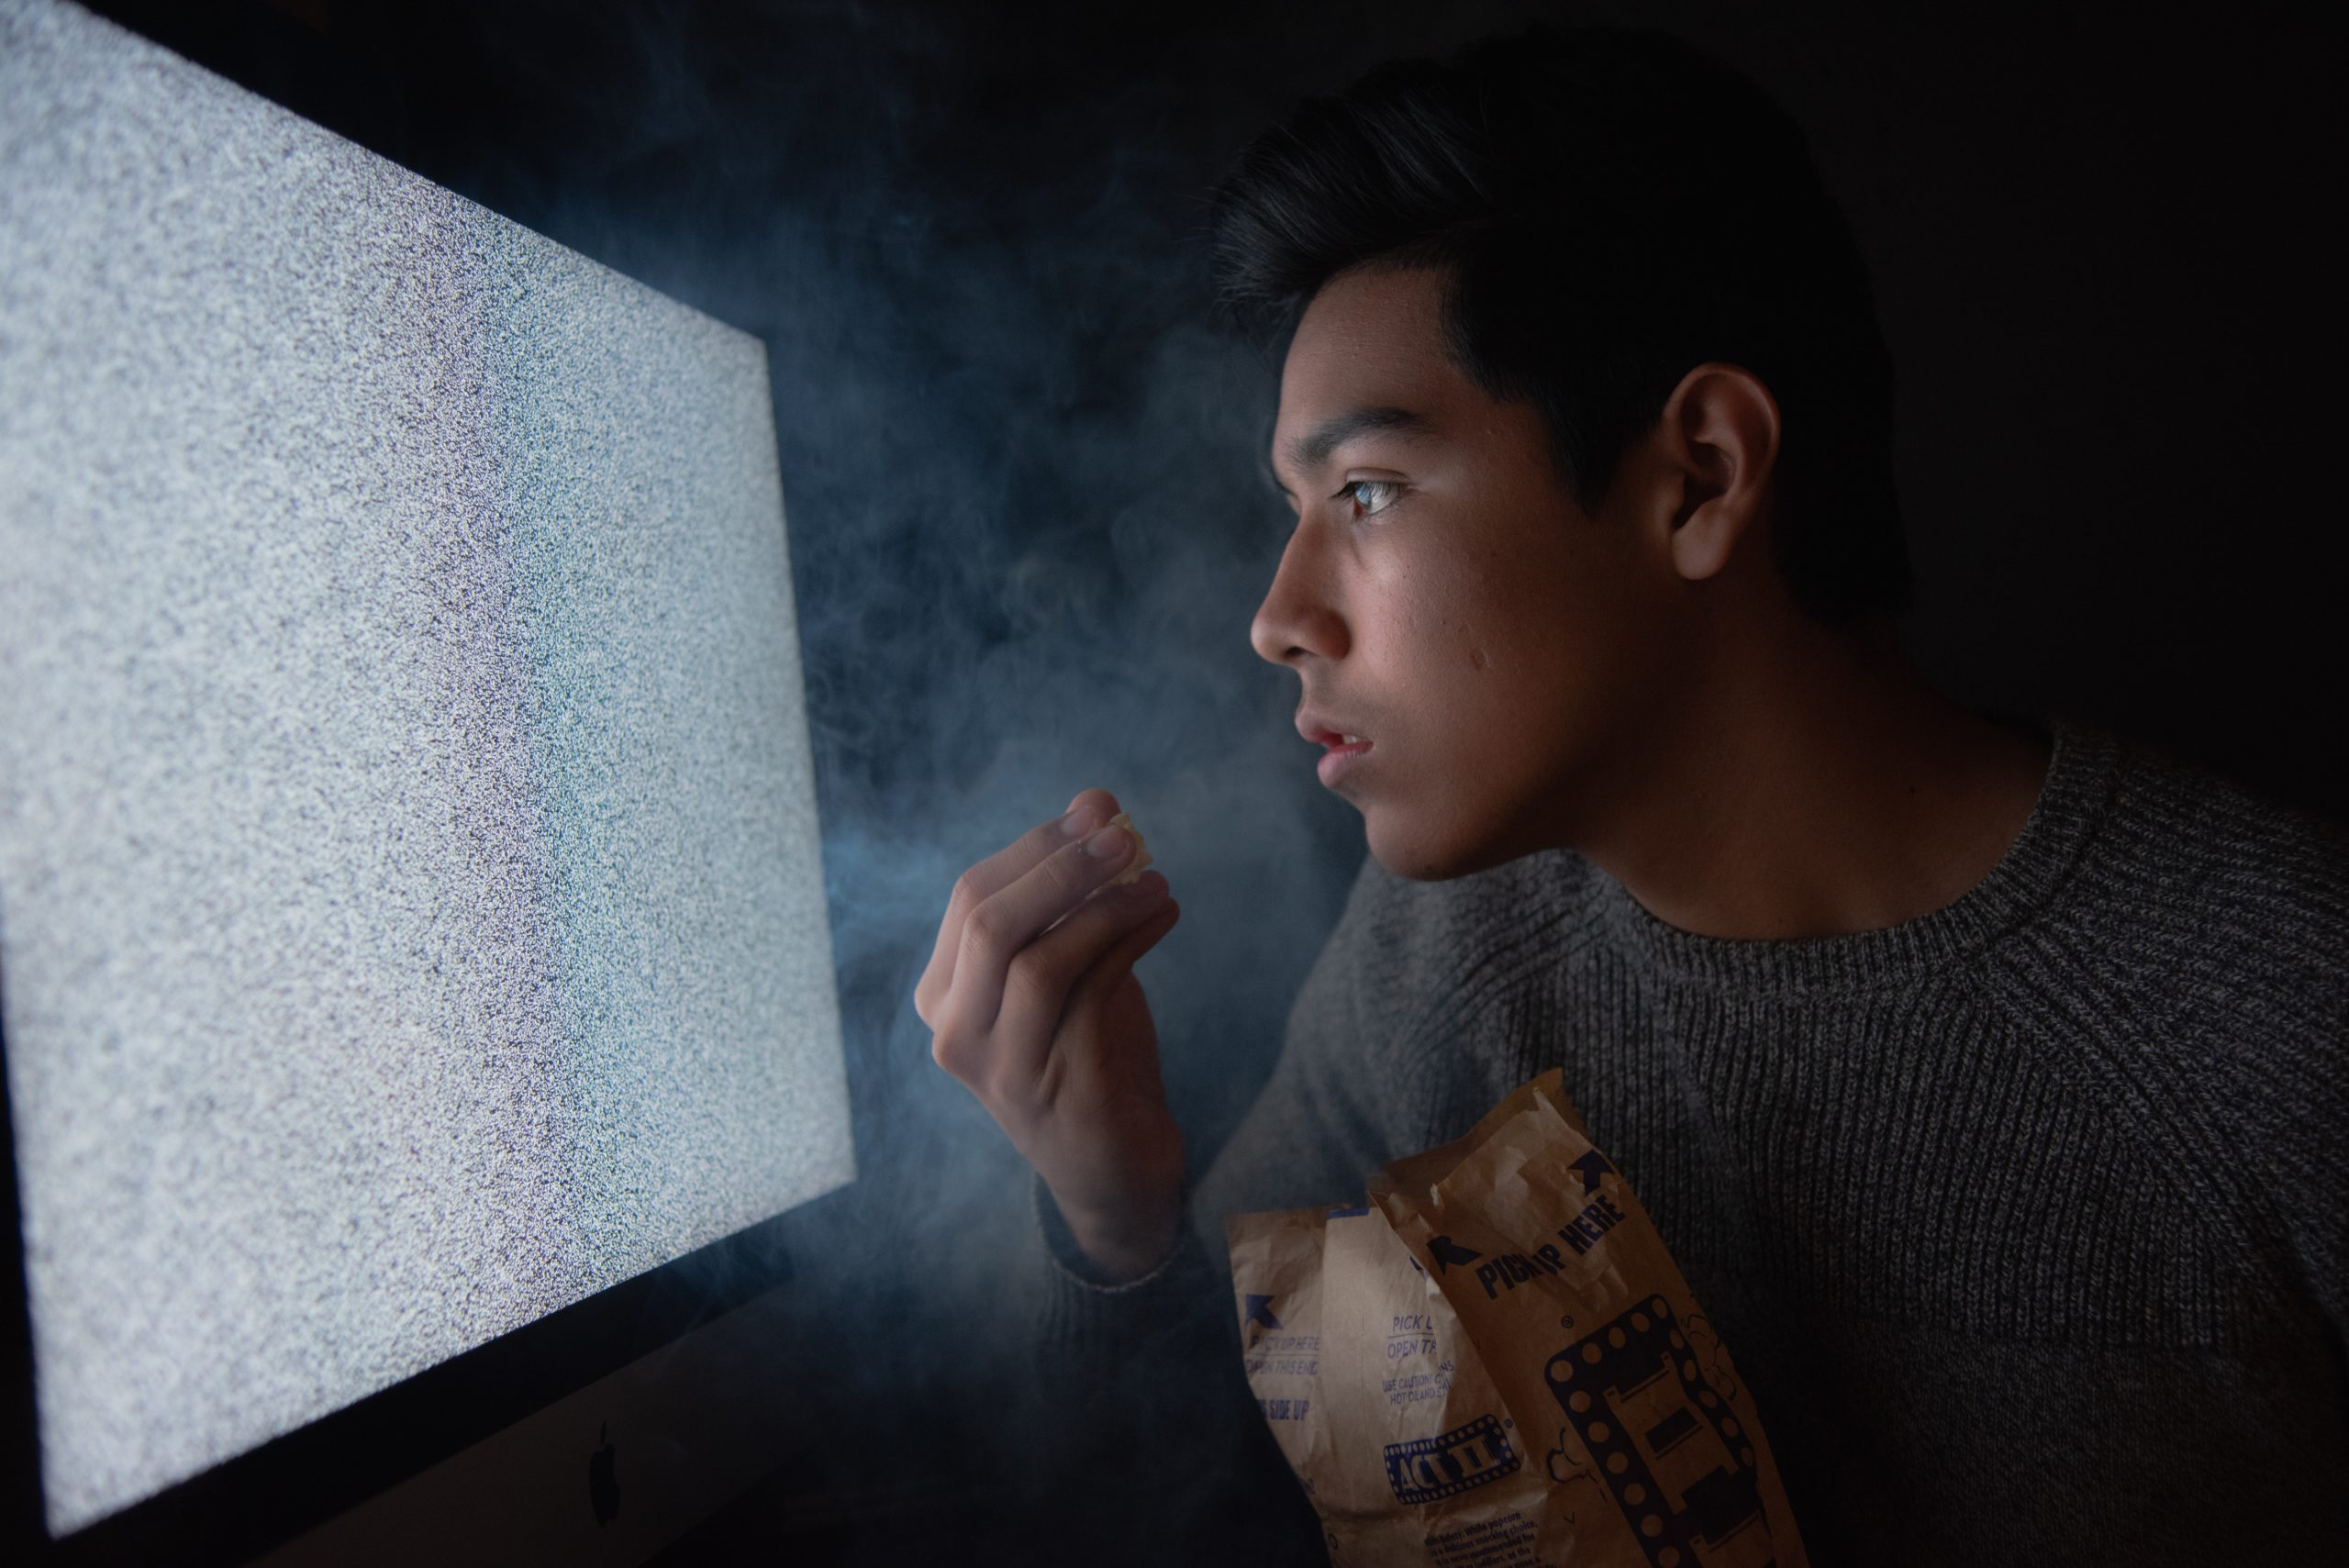 https://www.pexels.com/photo/man-eating-chips-while-watching-tv-3571503/